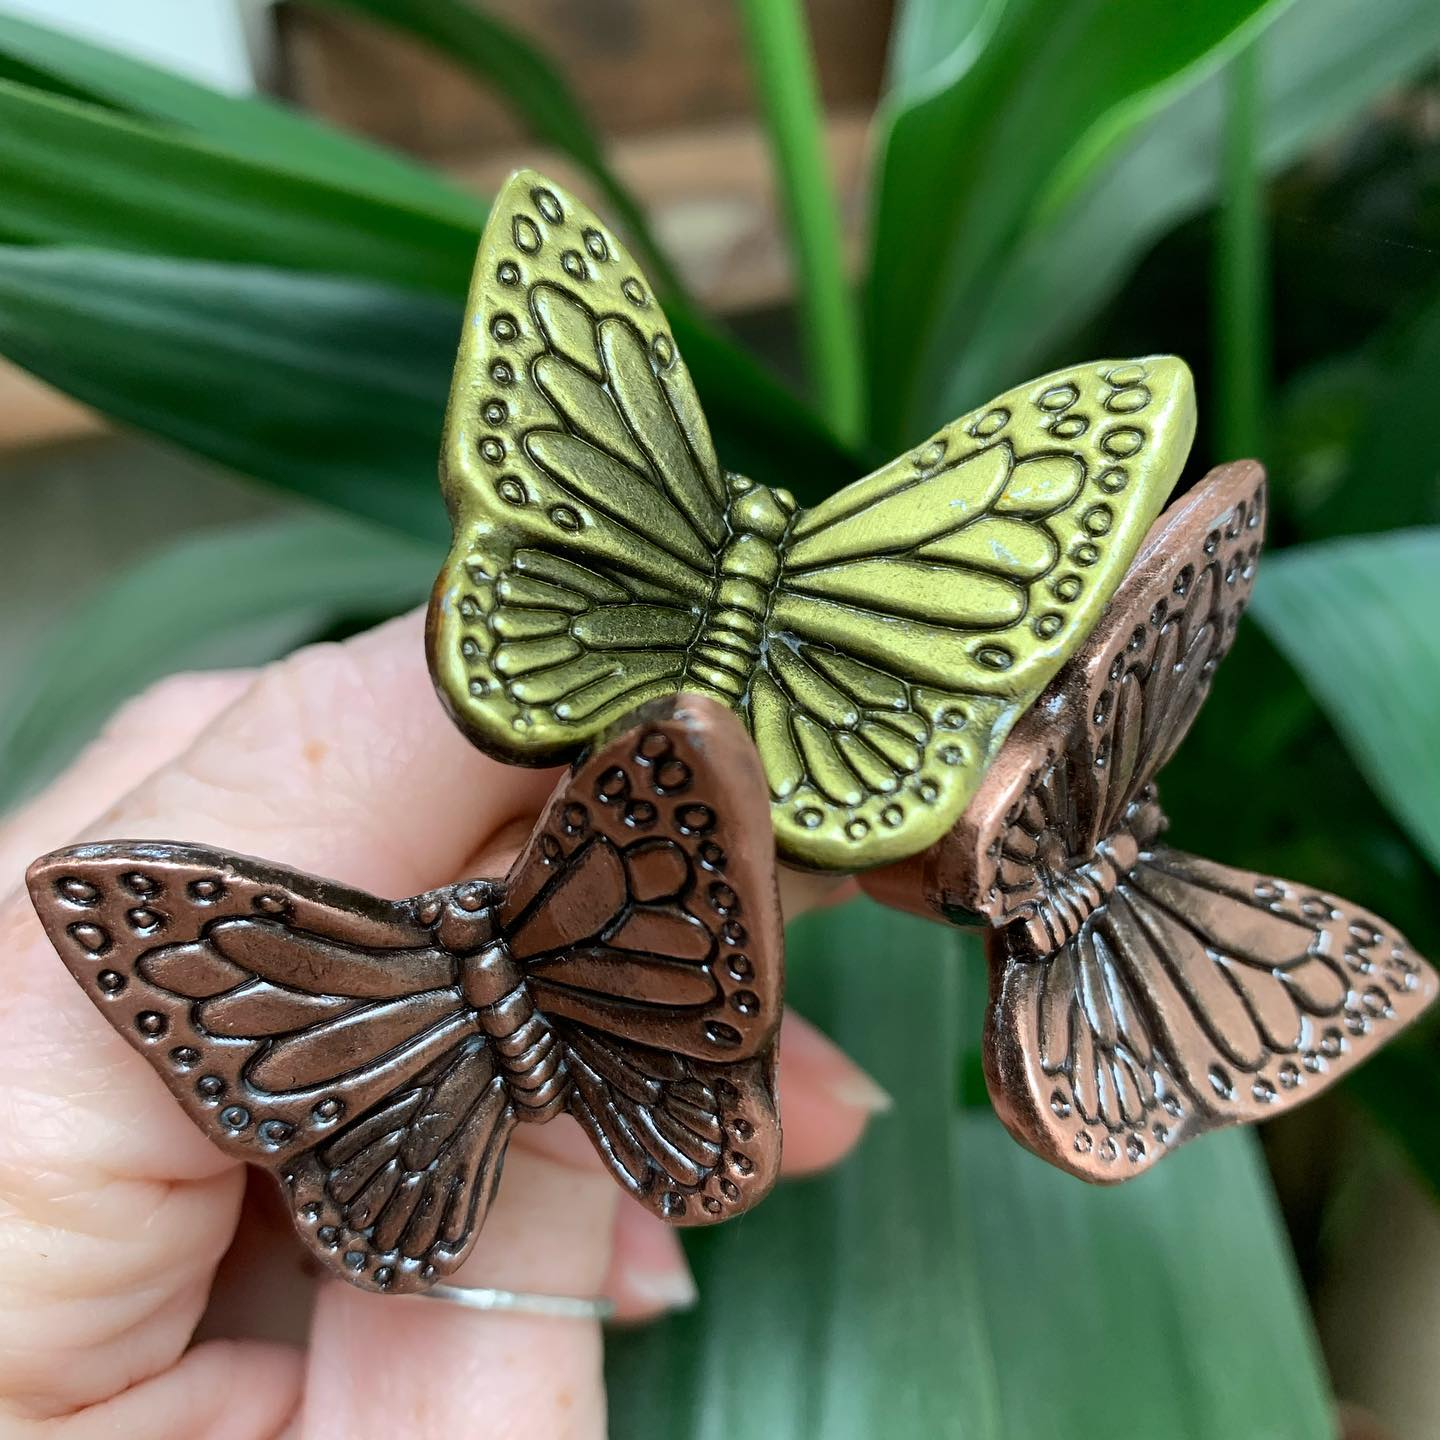 New arrivals!Can't wait to use these on some of our door wedges! ..#newproduct #nature #copper #butterfly #decorative #homewares #gingerandtweed